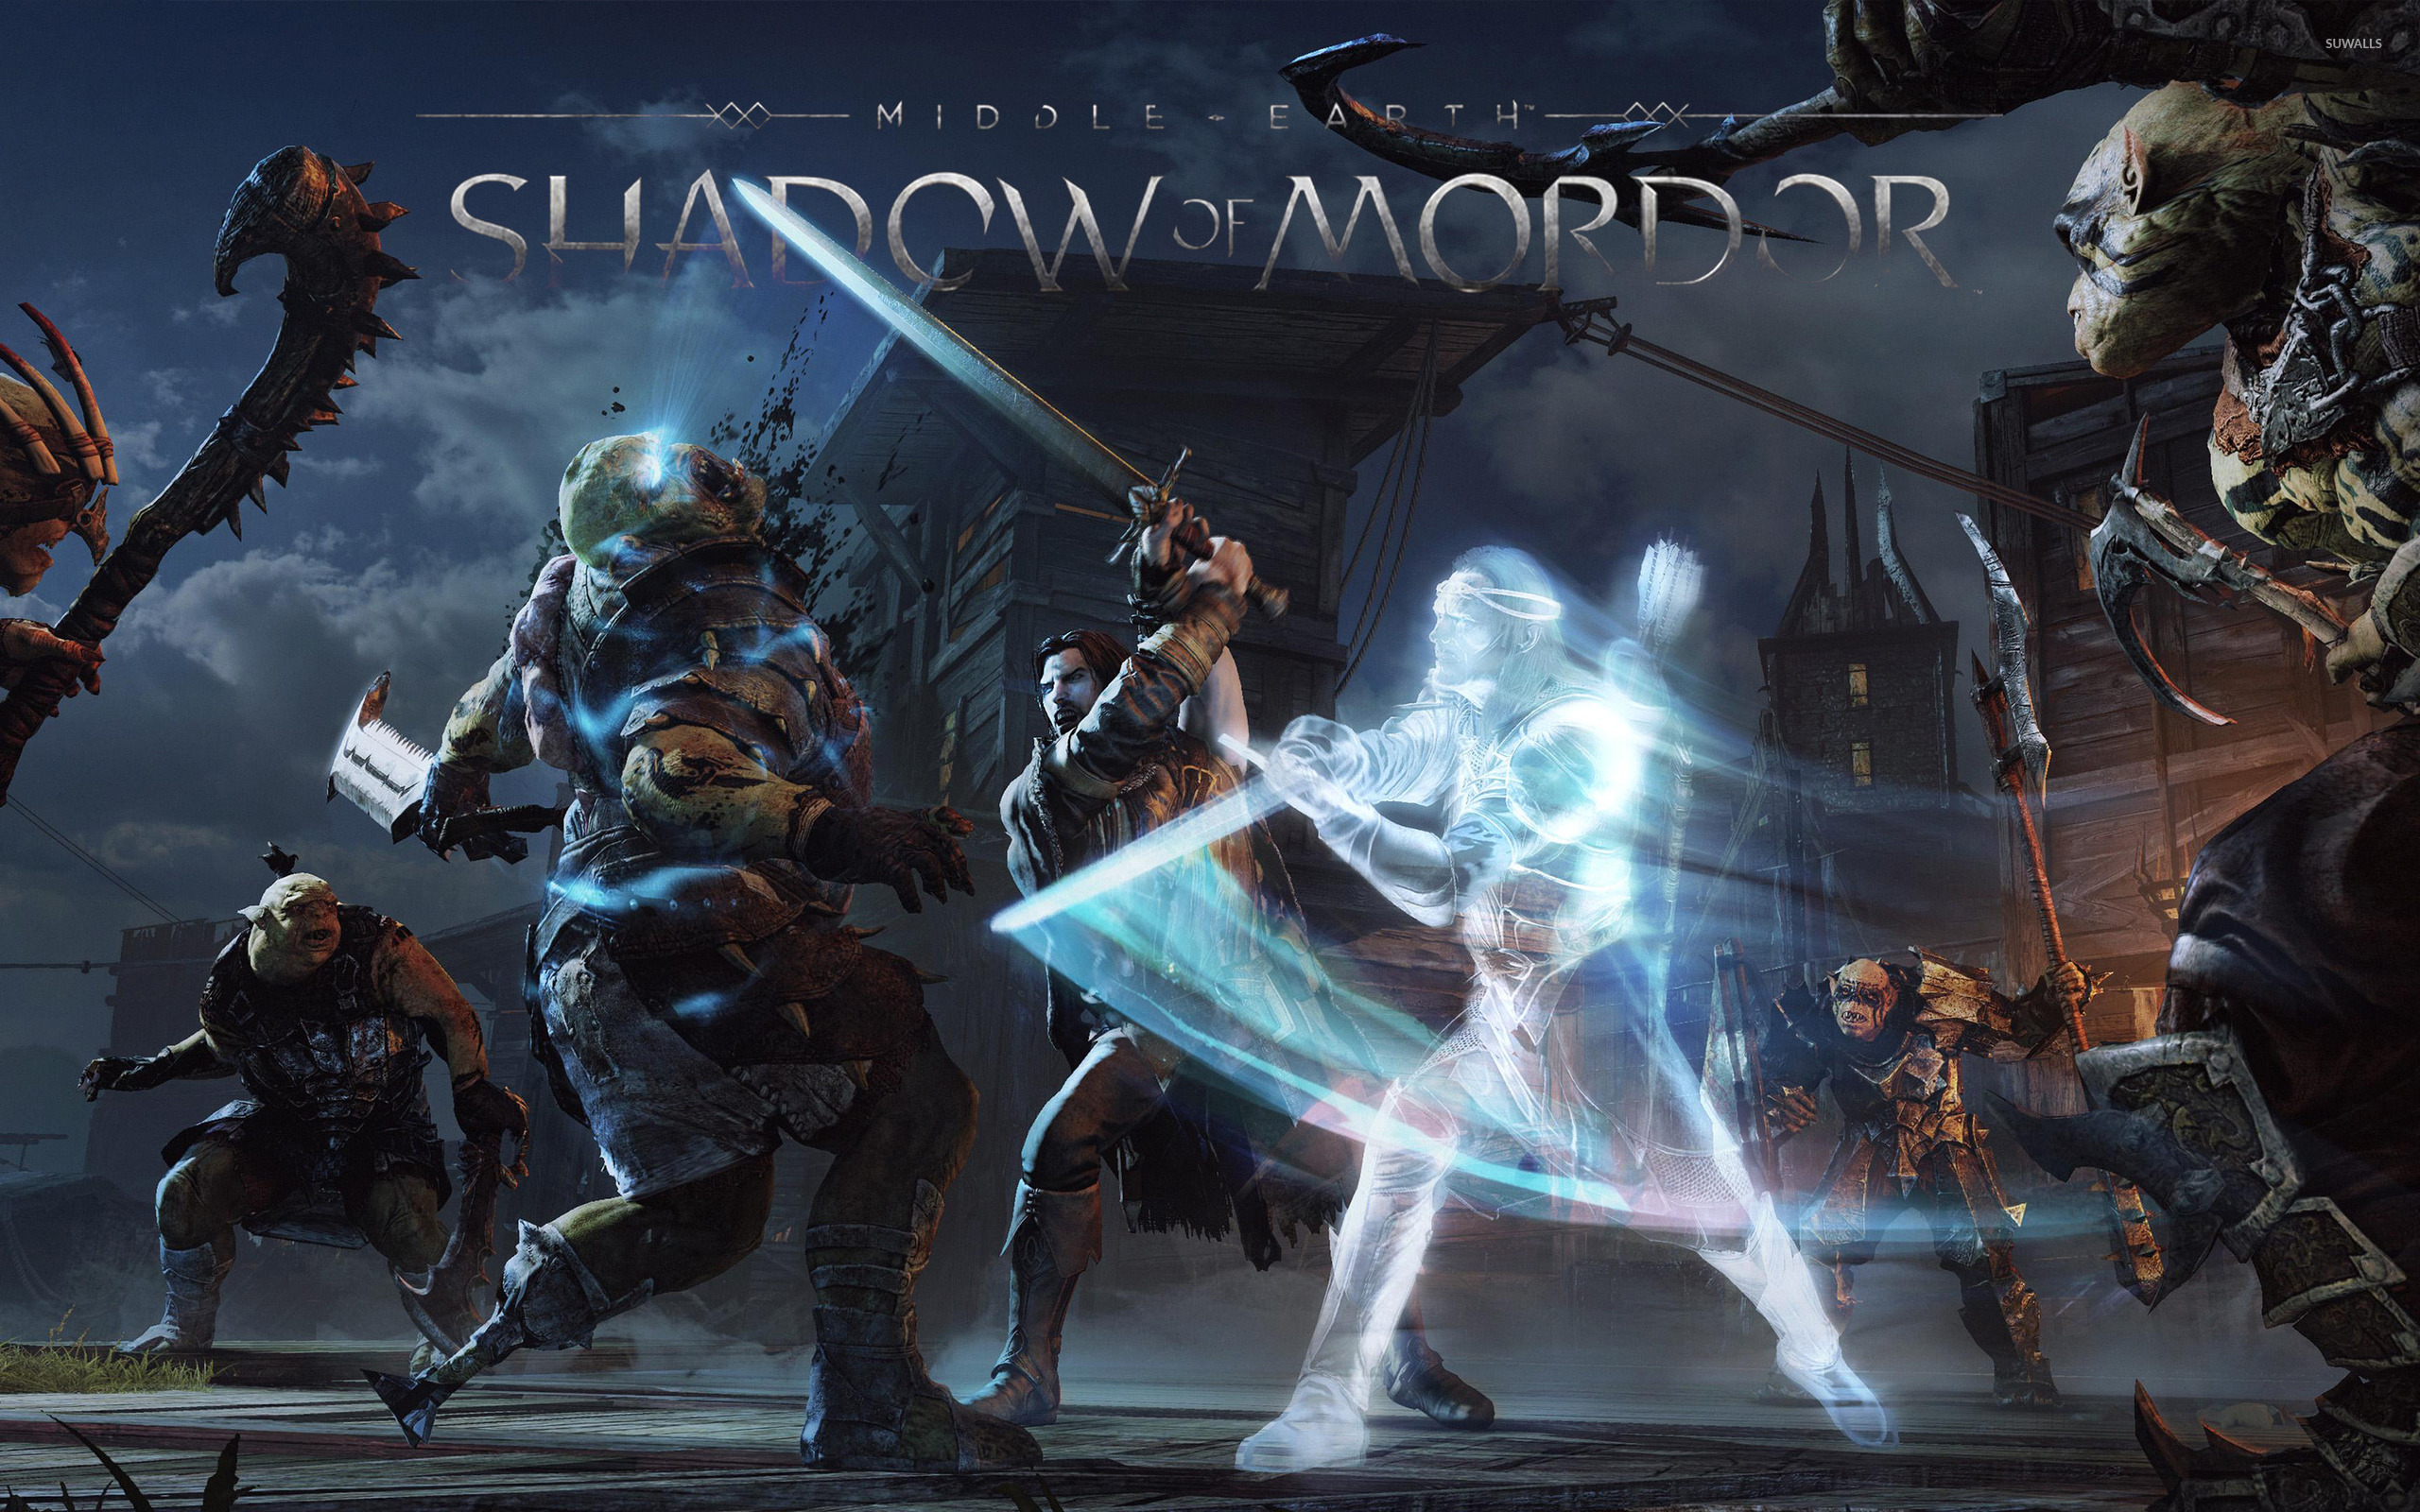 shadow of mordor wallpaper 2560x1600